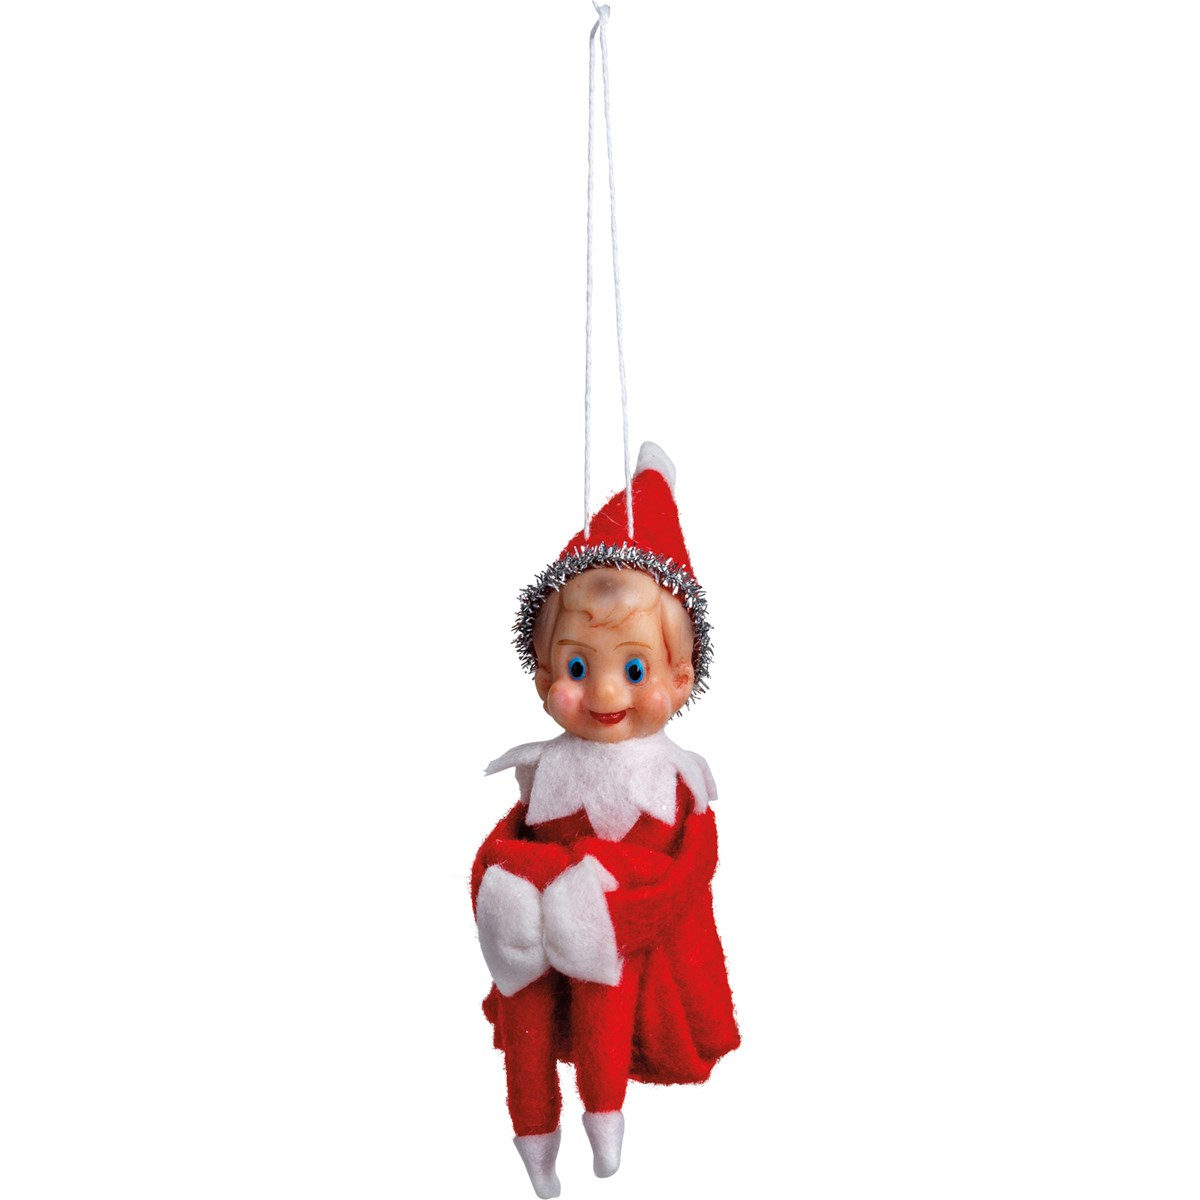 "Ornament - Elf - 1.75"" x 5.25"" x 2"" - Felt, Plastic, Wire, Tinsel"